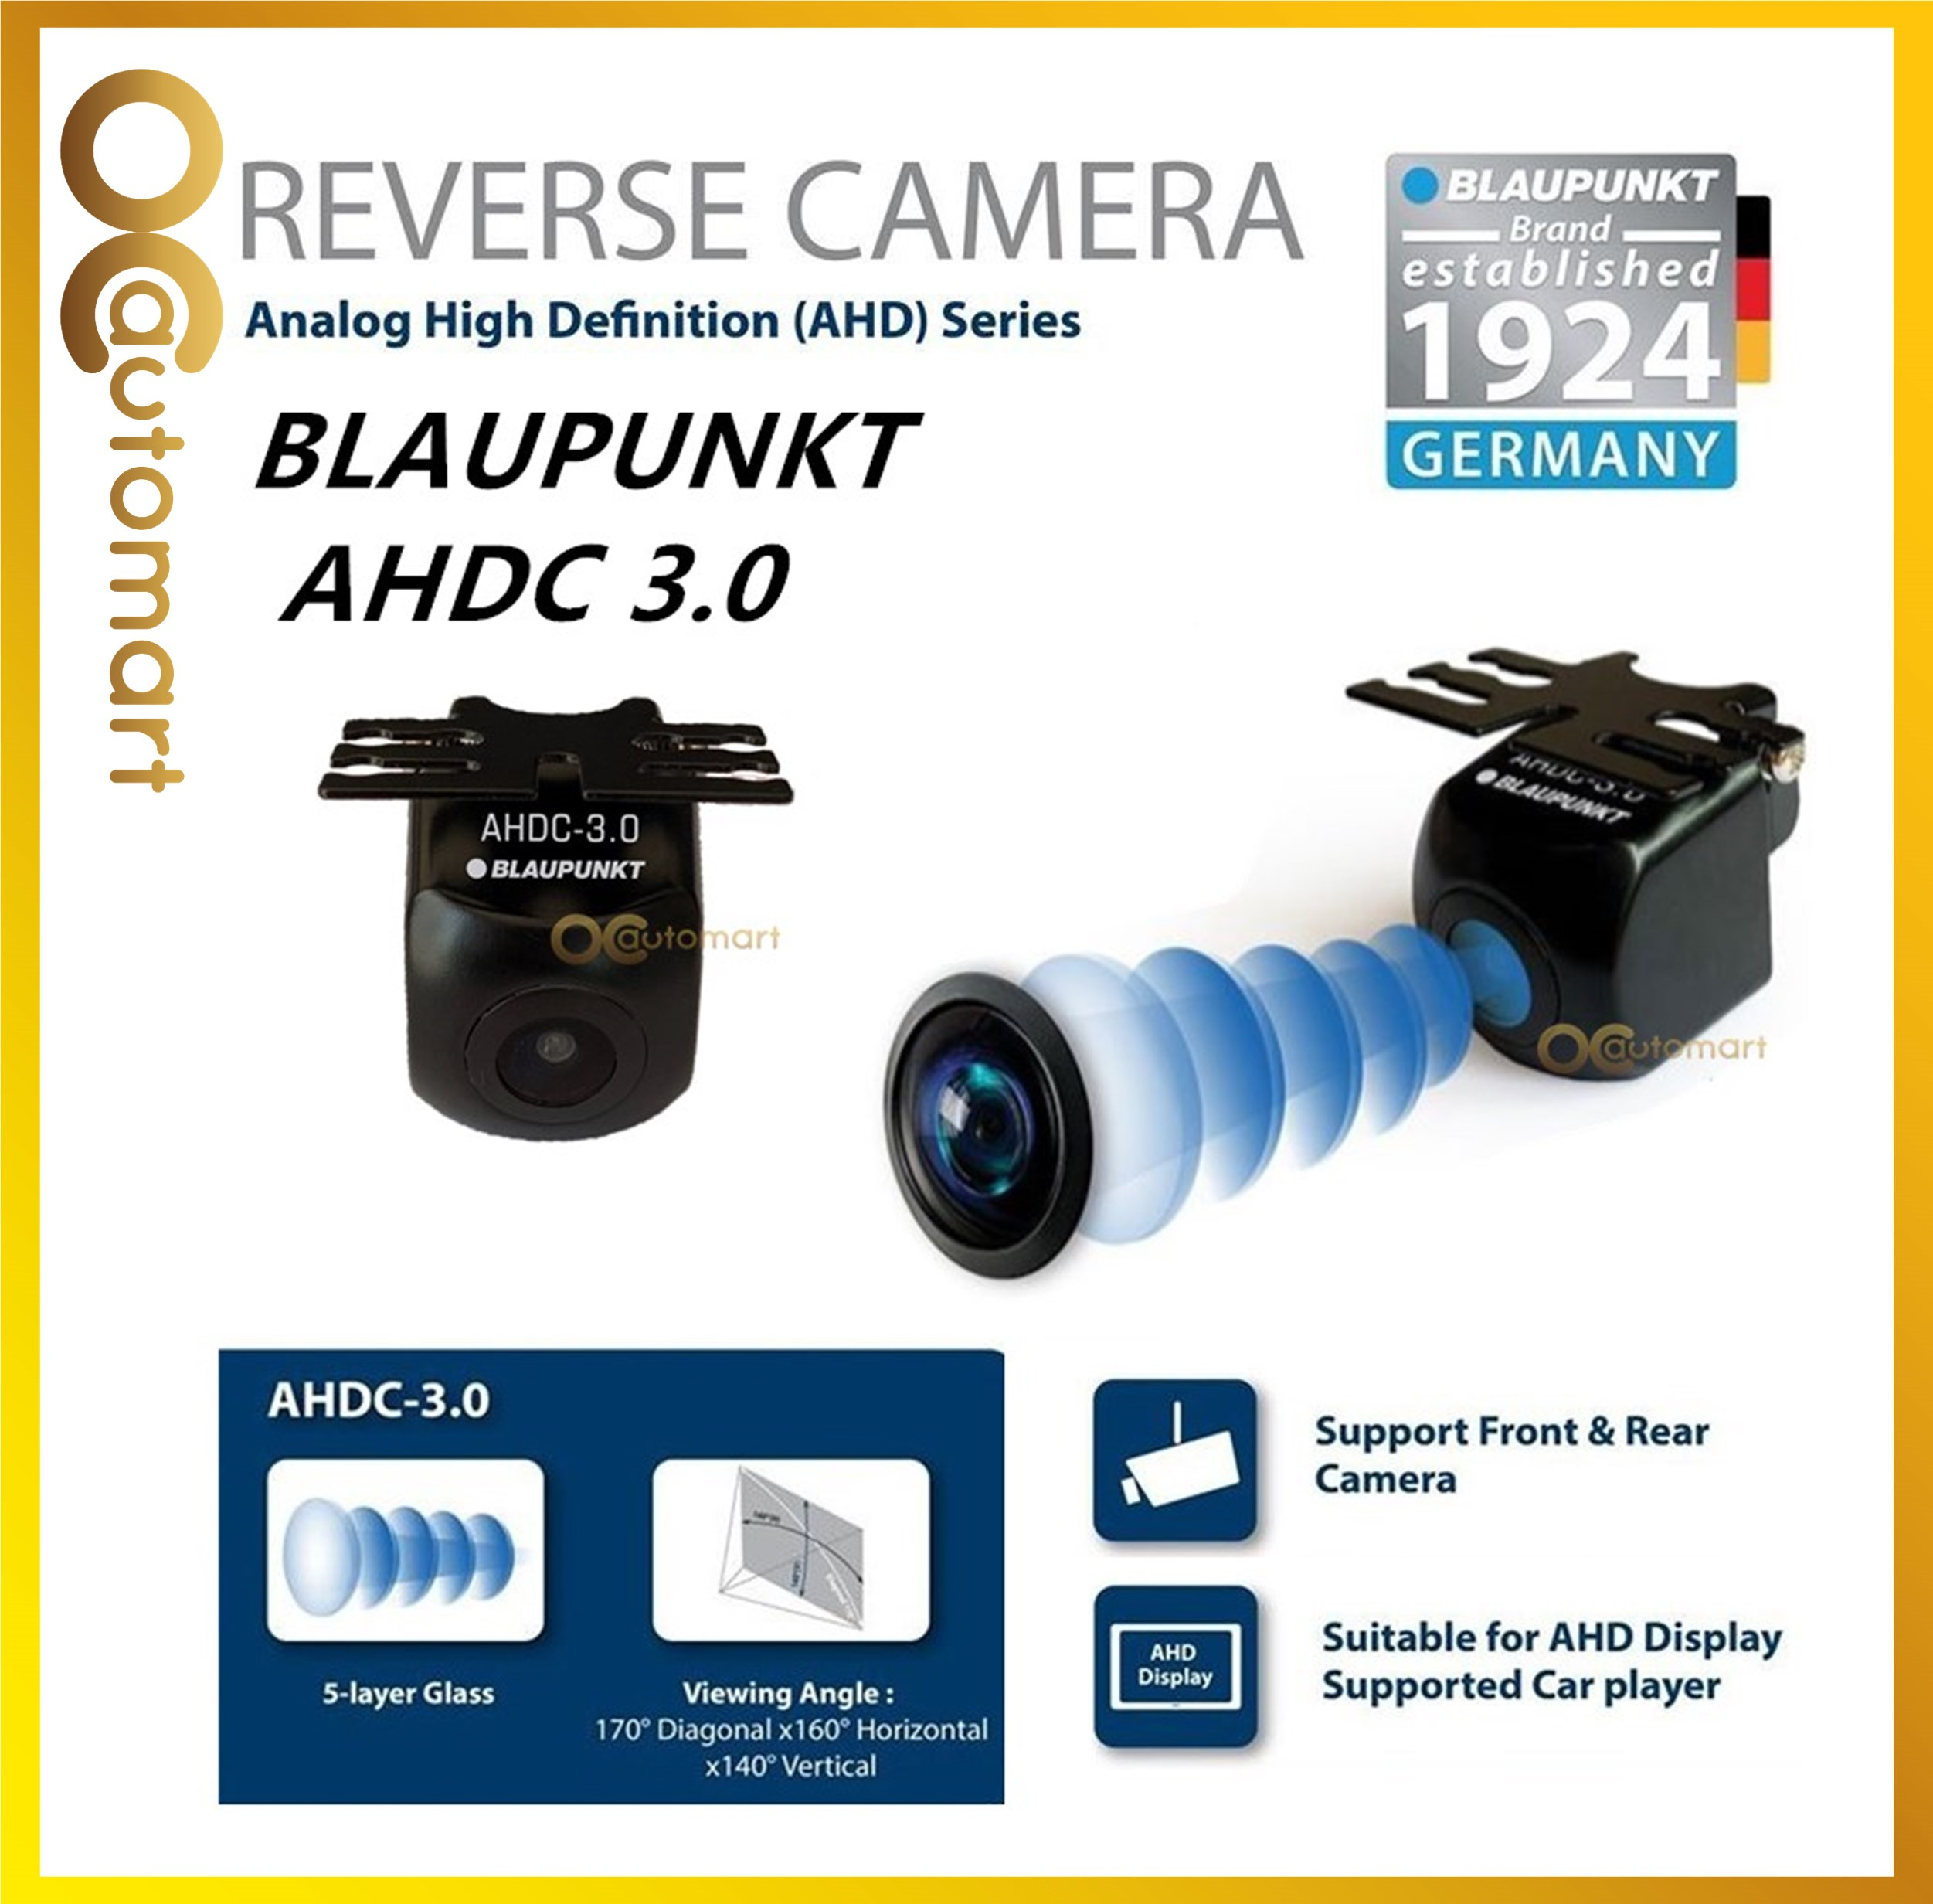 Blaupunkt 170° Ultra Wide Angle Car Reverse Camera AHDC 3.0 Car Camera Suitable for AHD Display Supported Car Player